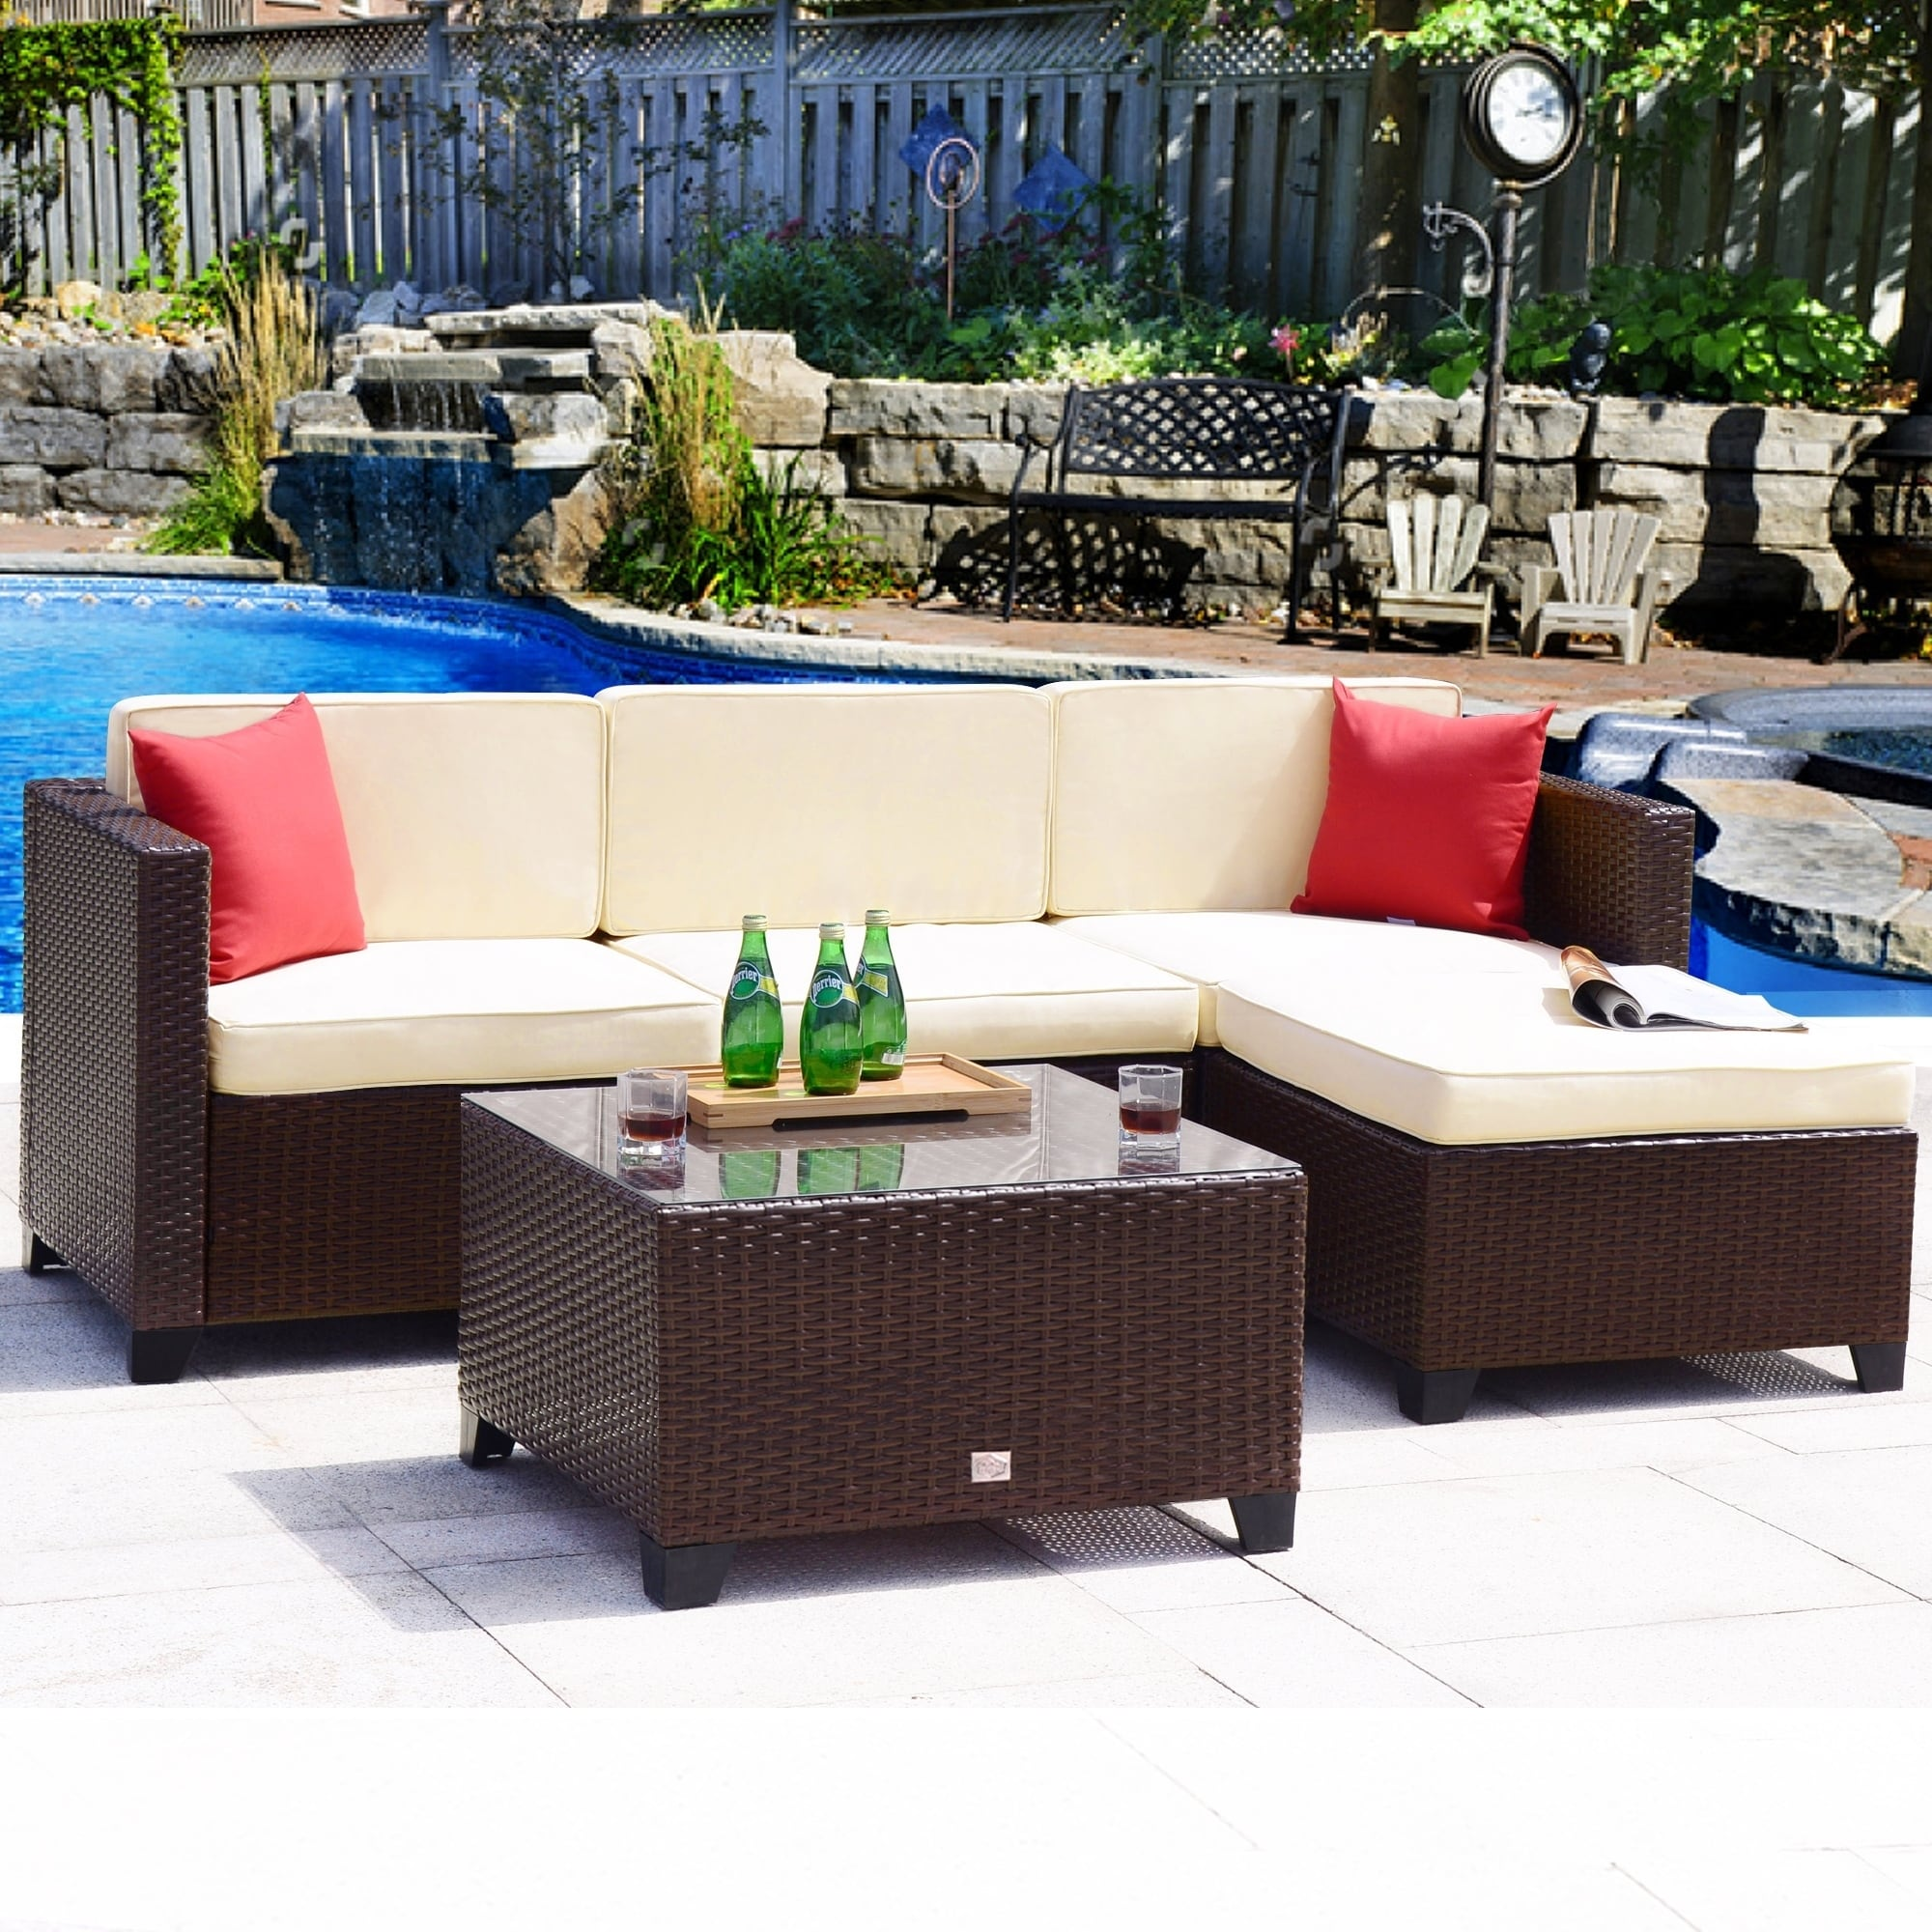 Shop 5 Pc Rattan Sofa Set Cushioned Sectional Wicker Outdoor Garden